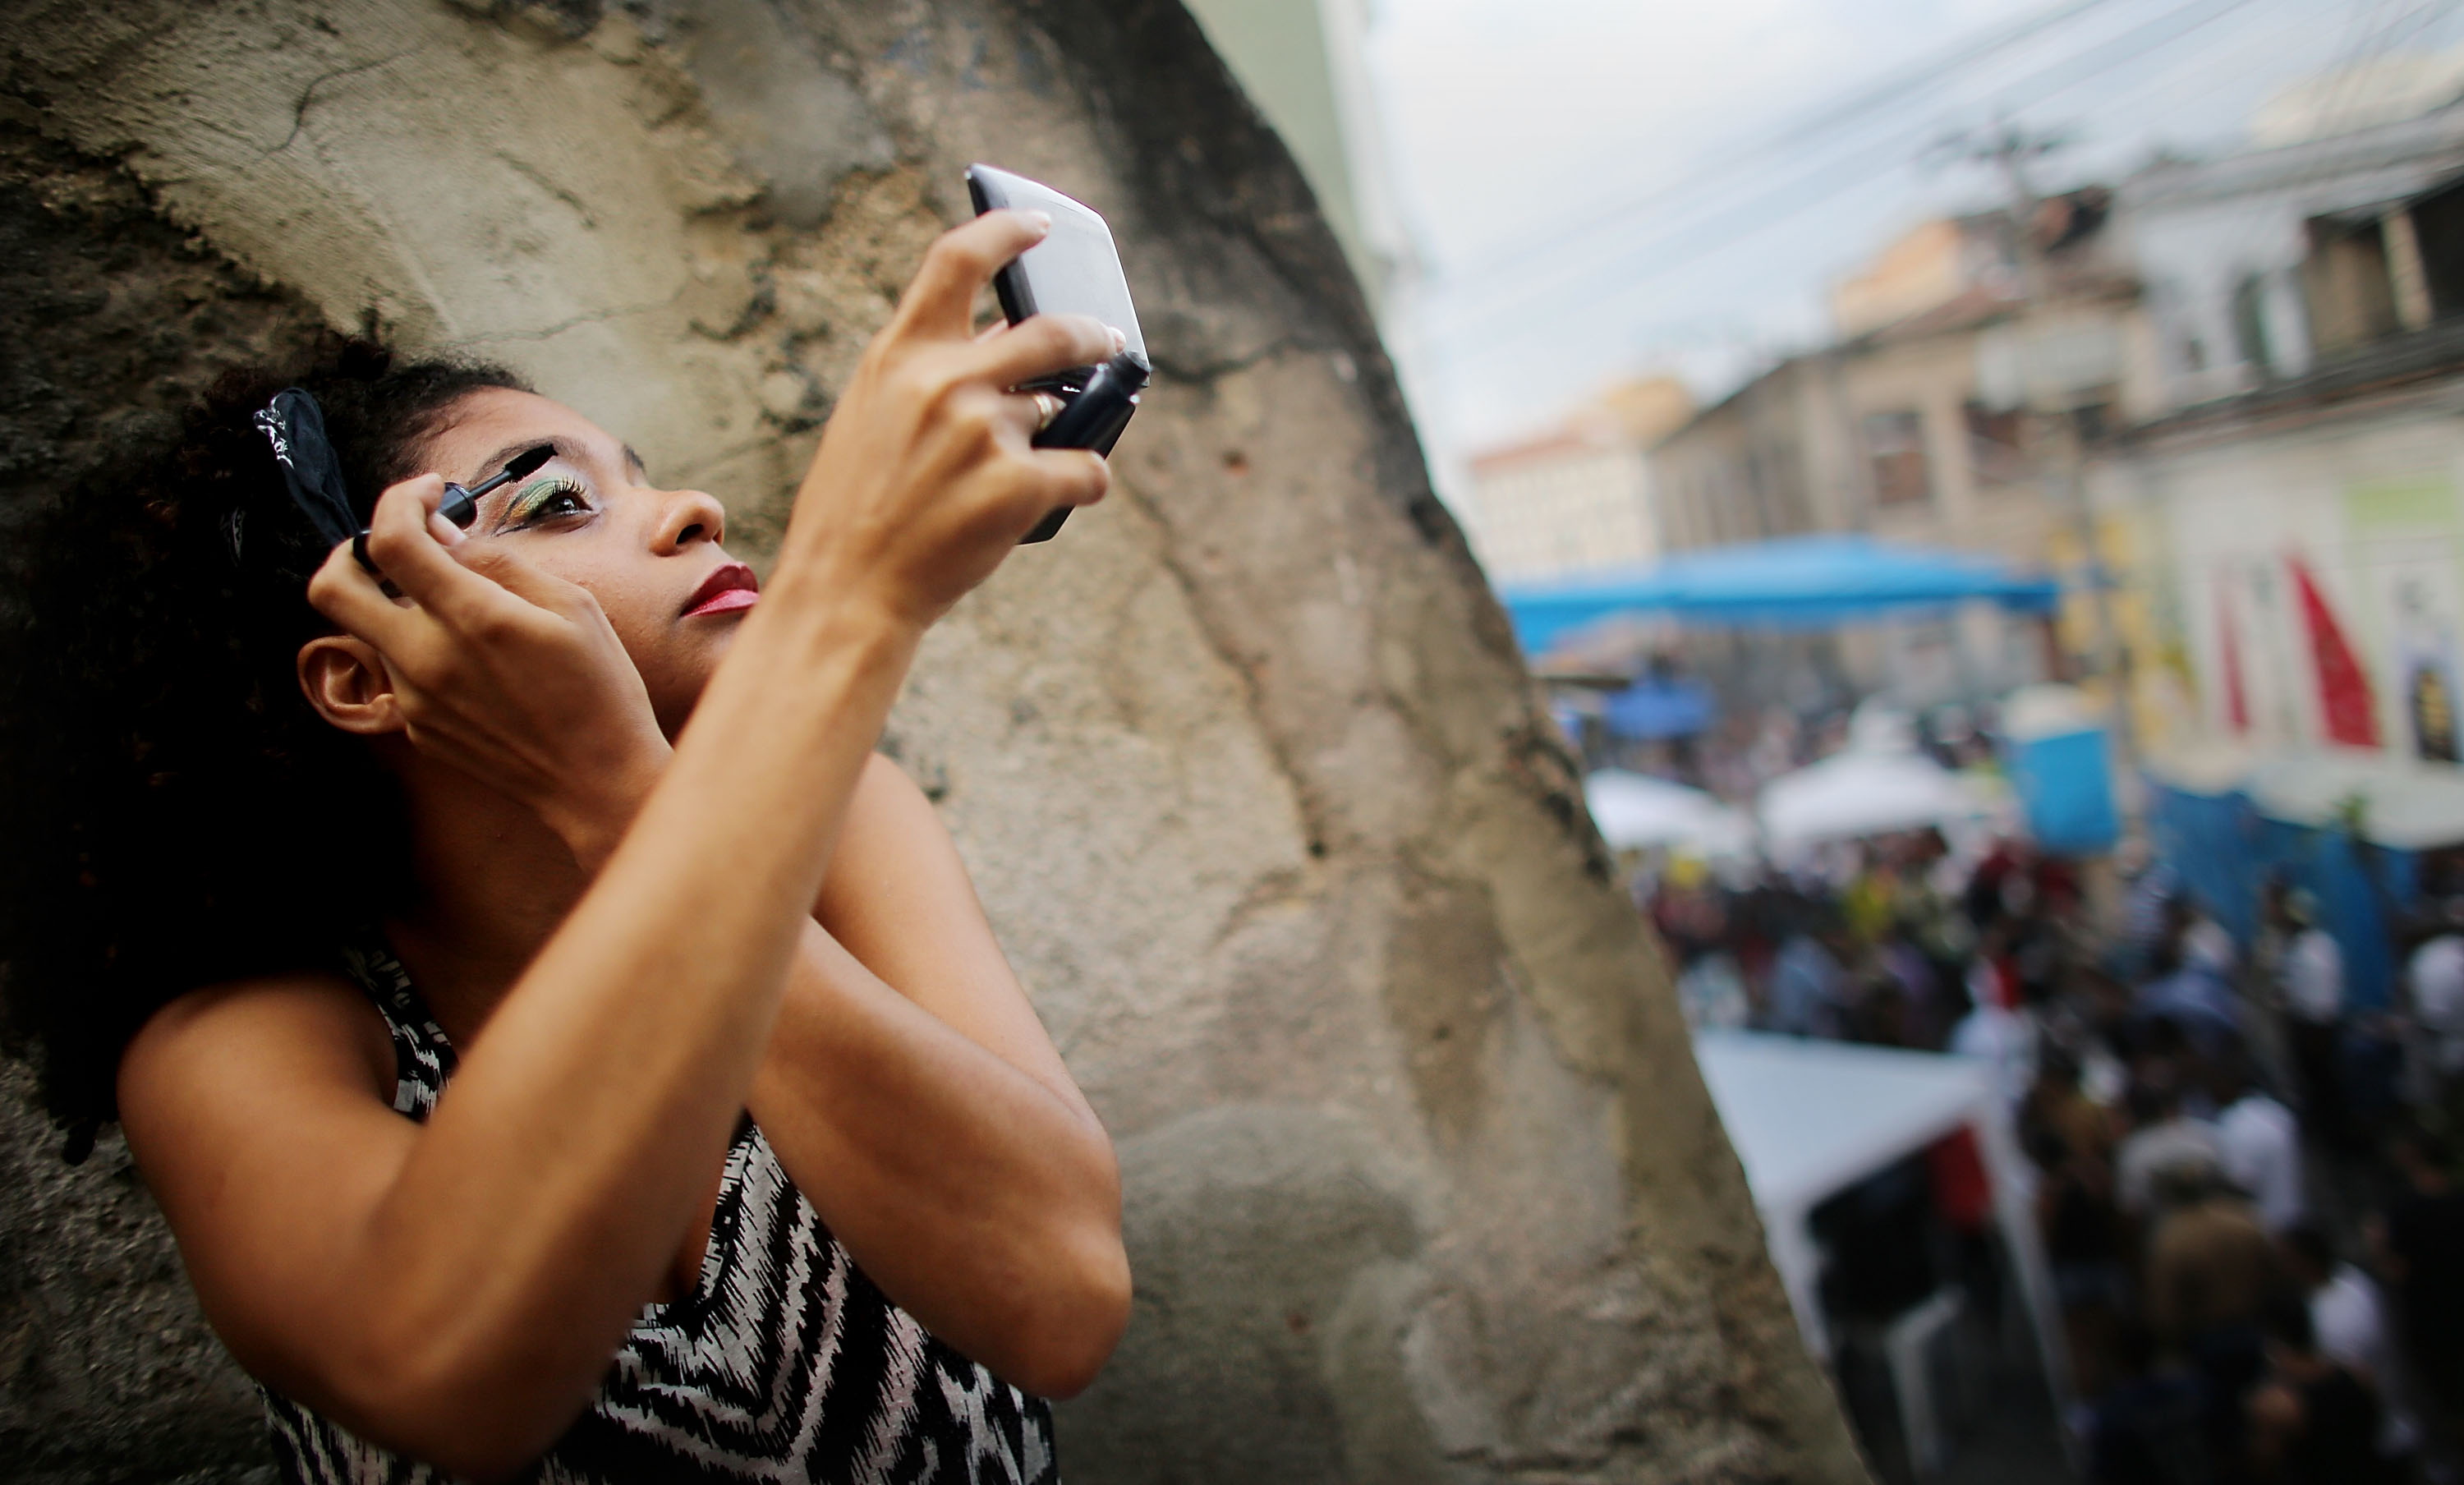 Performer Agatha Rosa with Grupo Orunmila applies her makeup before dancing at National Day of Samba celebrations at Pedra do Sal in the port district, on December 2, 2013 in Rio de Janeiro.